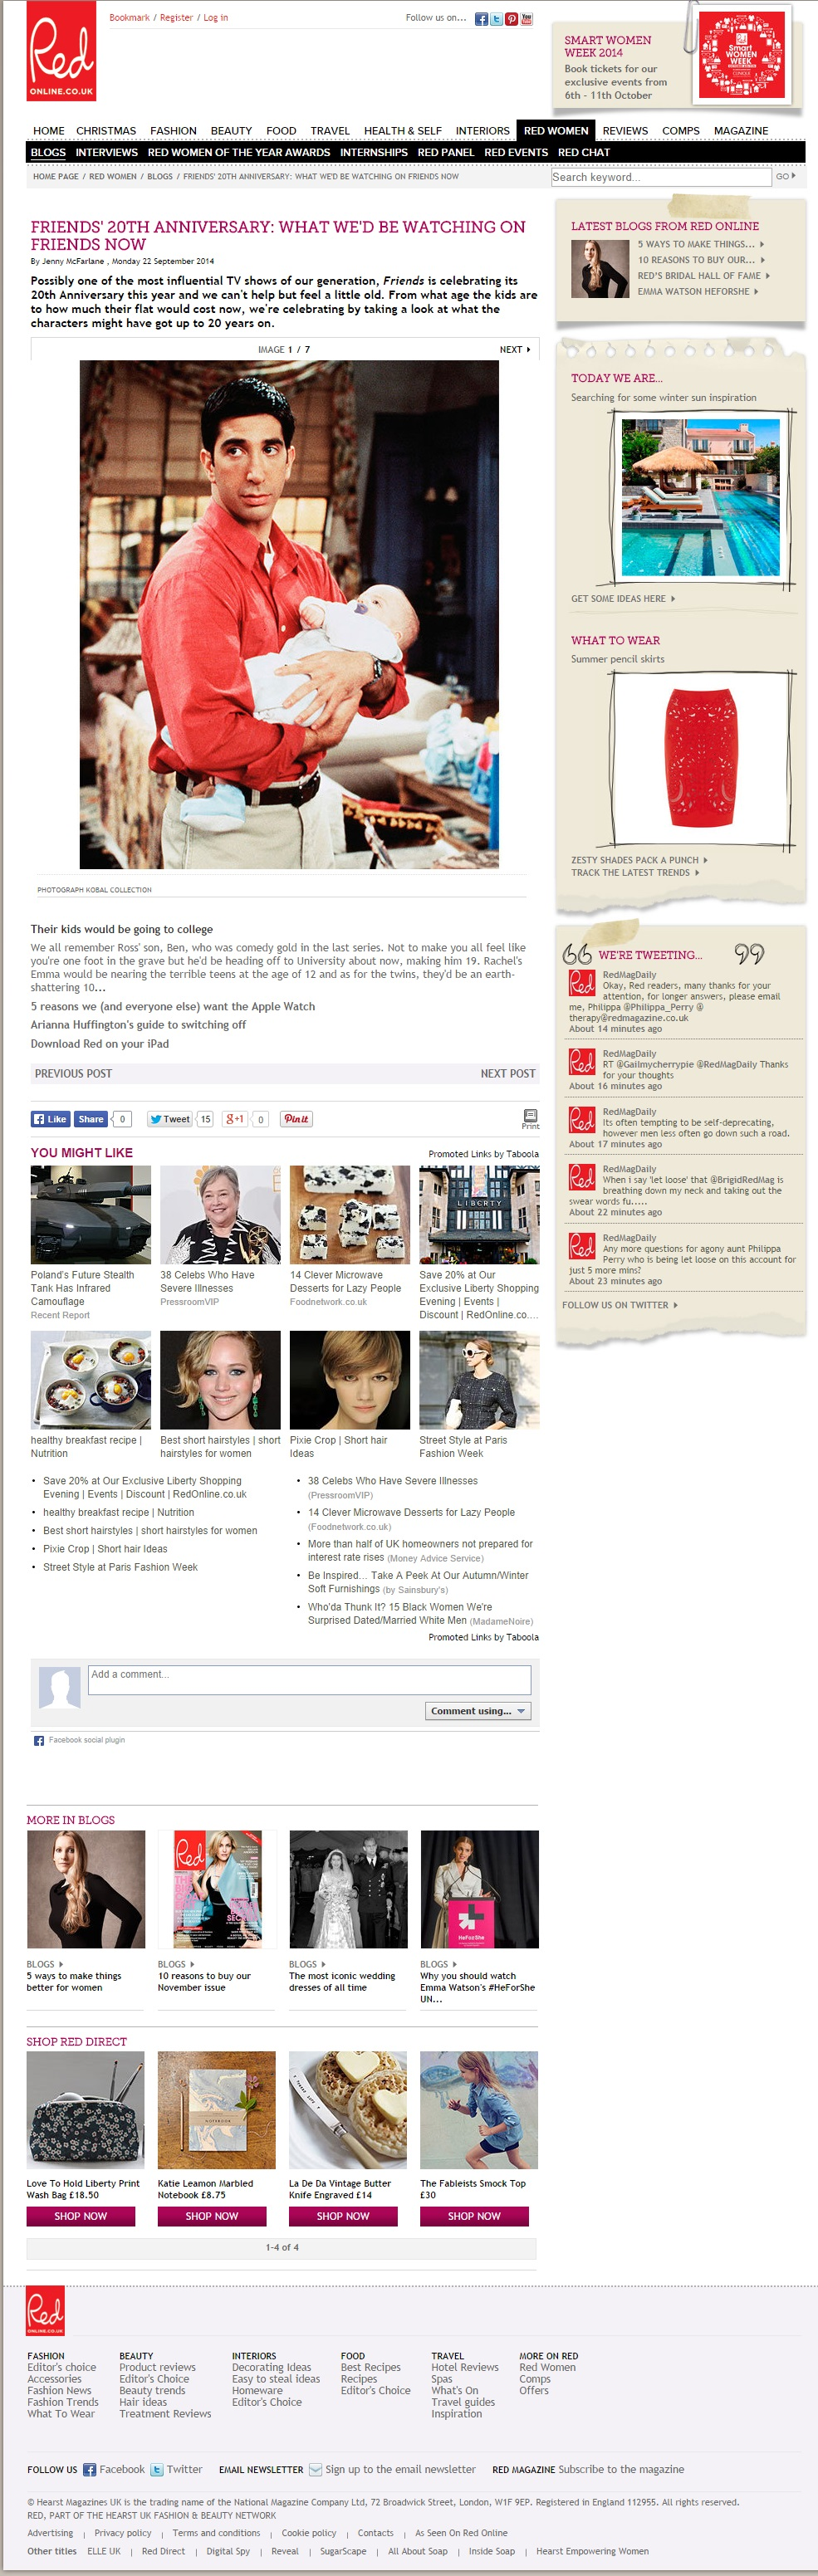 screencapture-www-redonline-co-uk-red-women-blogs-friends-20th-anniversary-what-they-would-be-doing-now